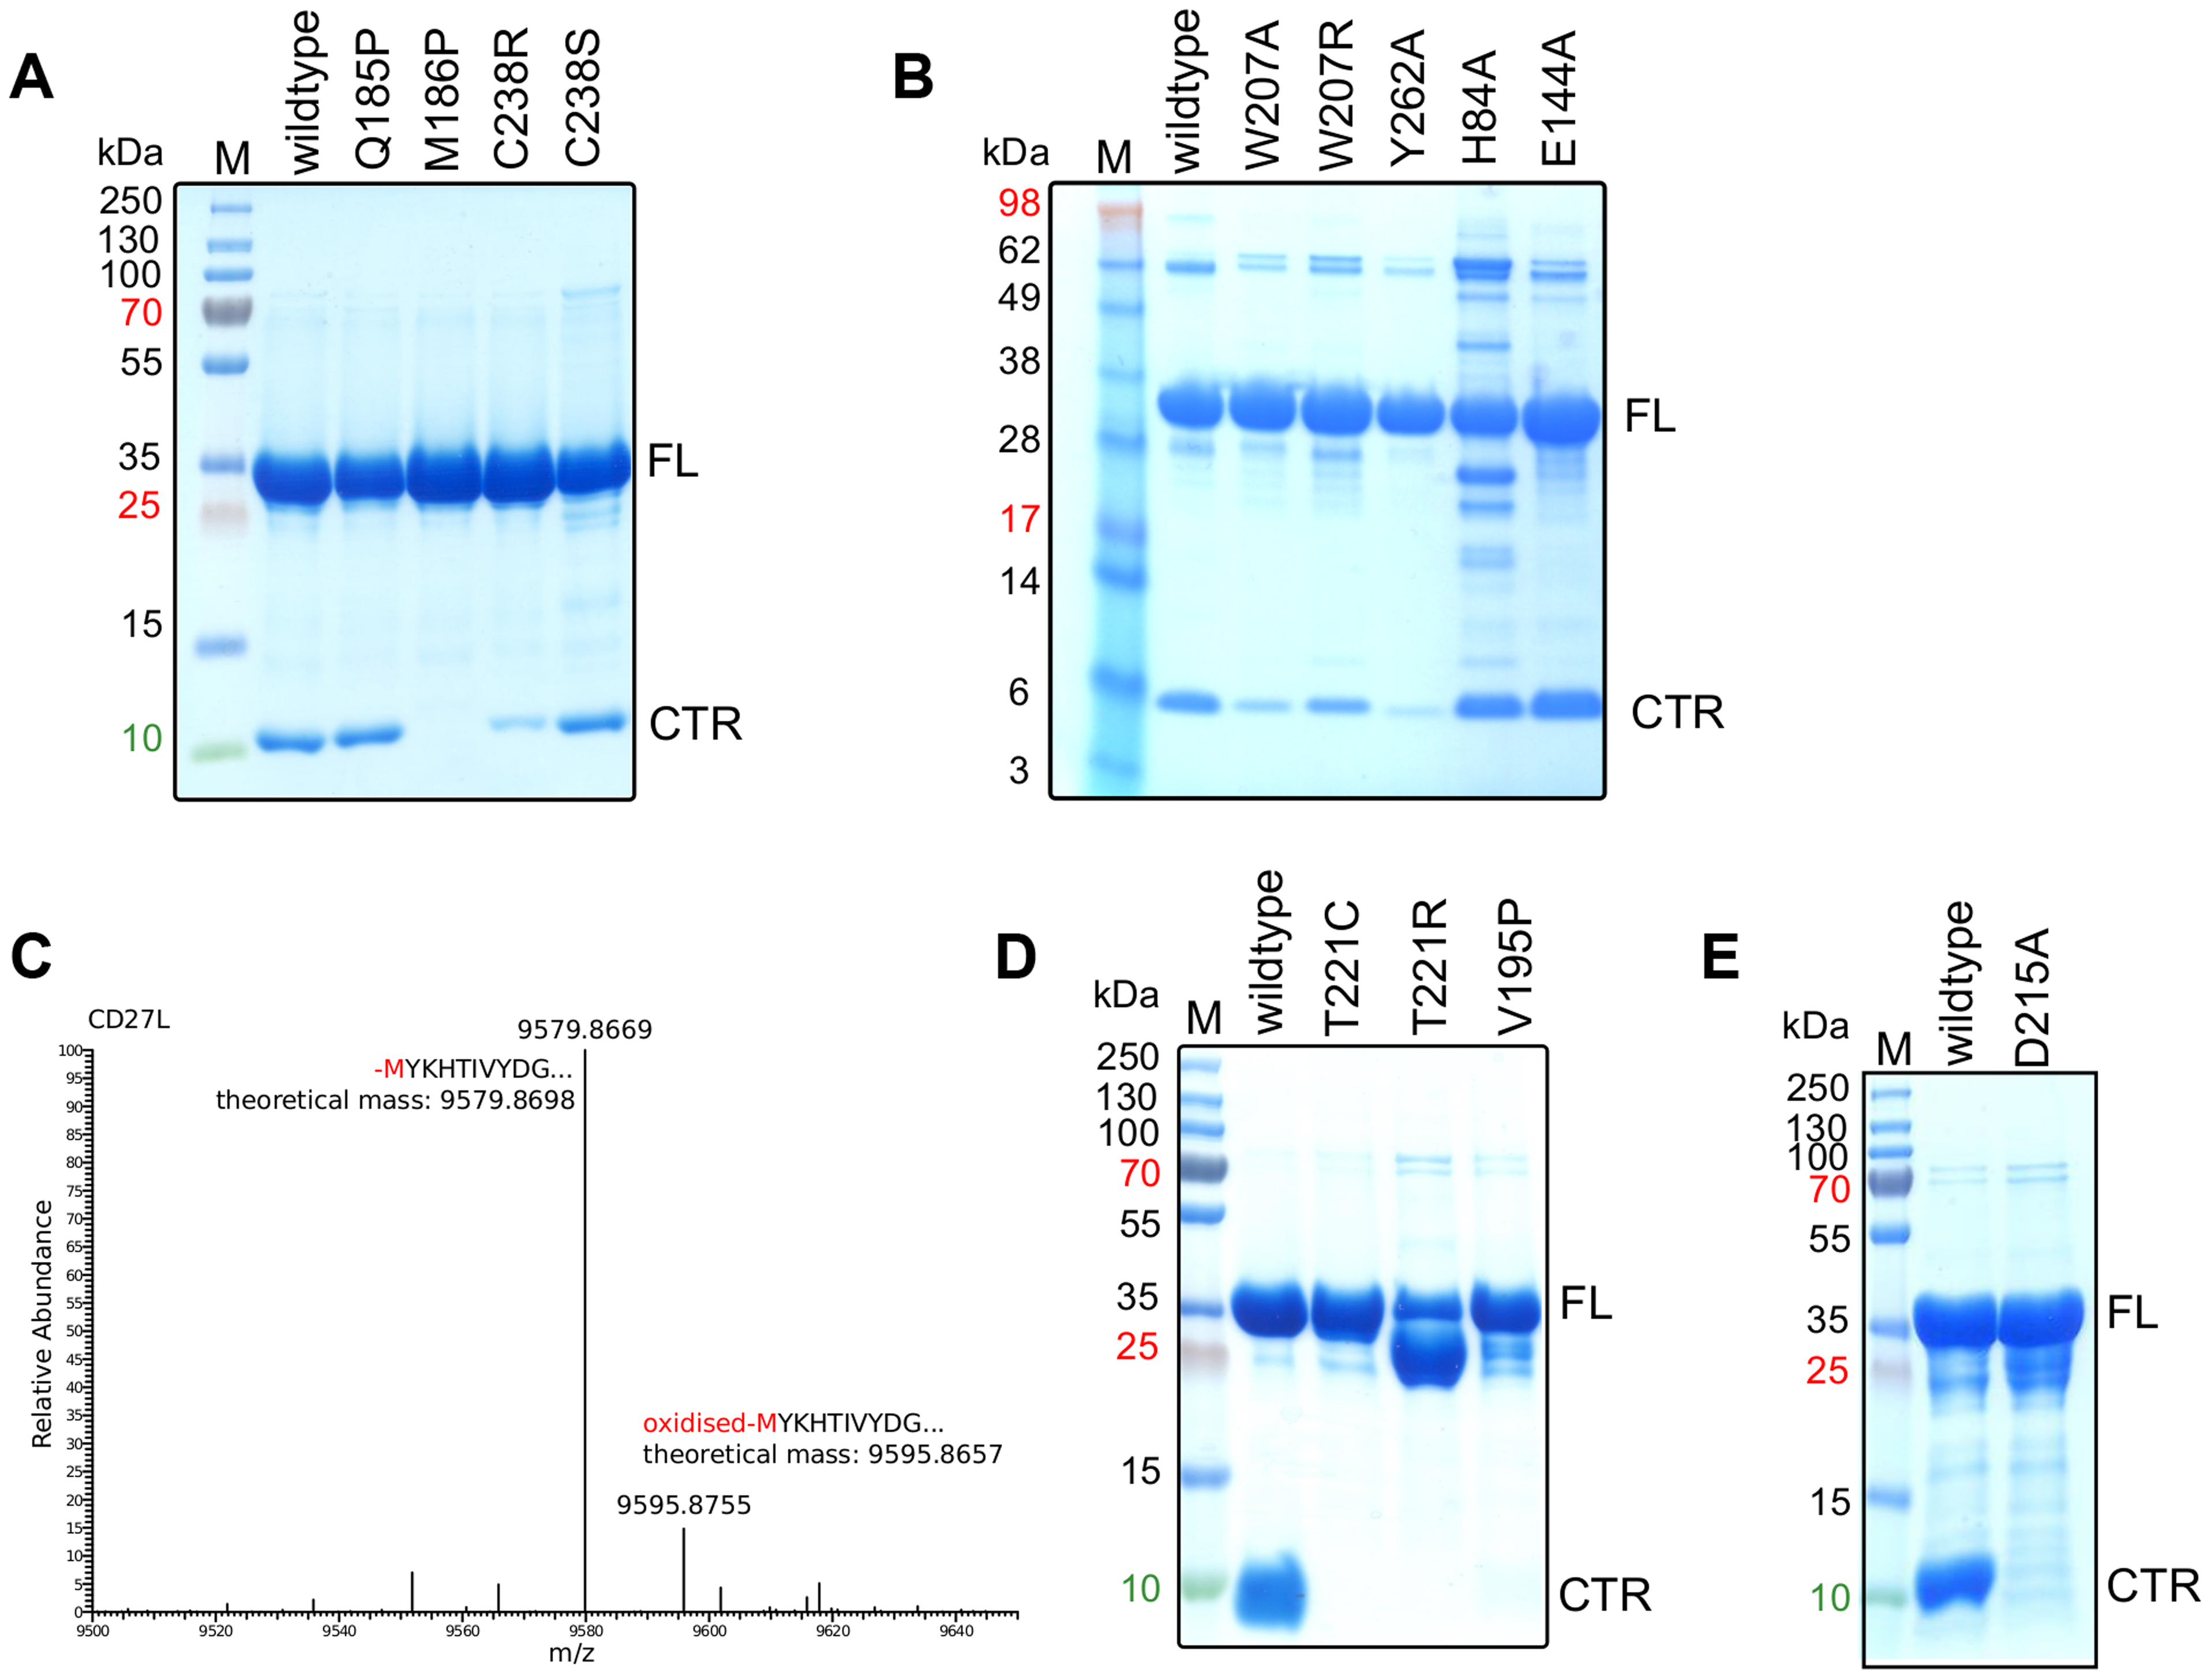 The cleavage of the CD27L and CTP1L endolysins occurs at a specific site and is affected by mutagenesis.